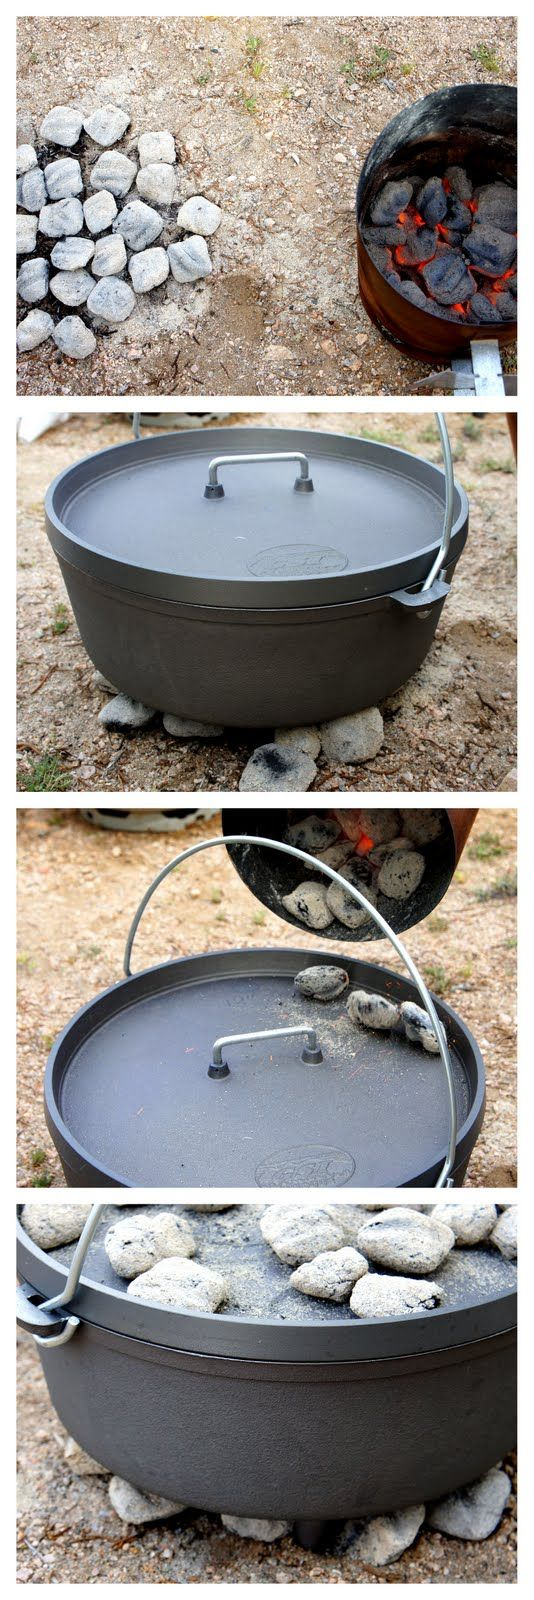 Two great Dutch oven recipes - BBQ Pork Ribs and Peach Cobbler!